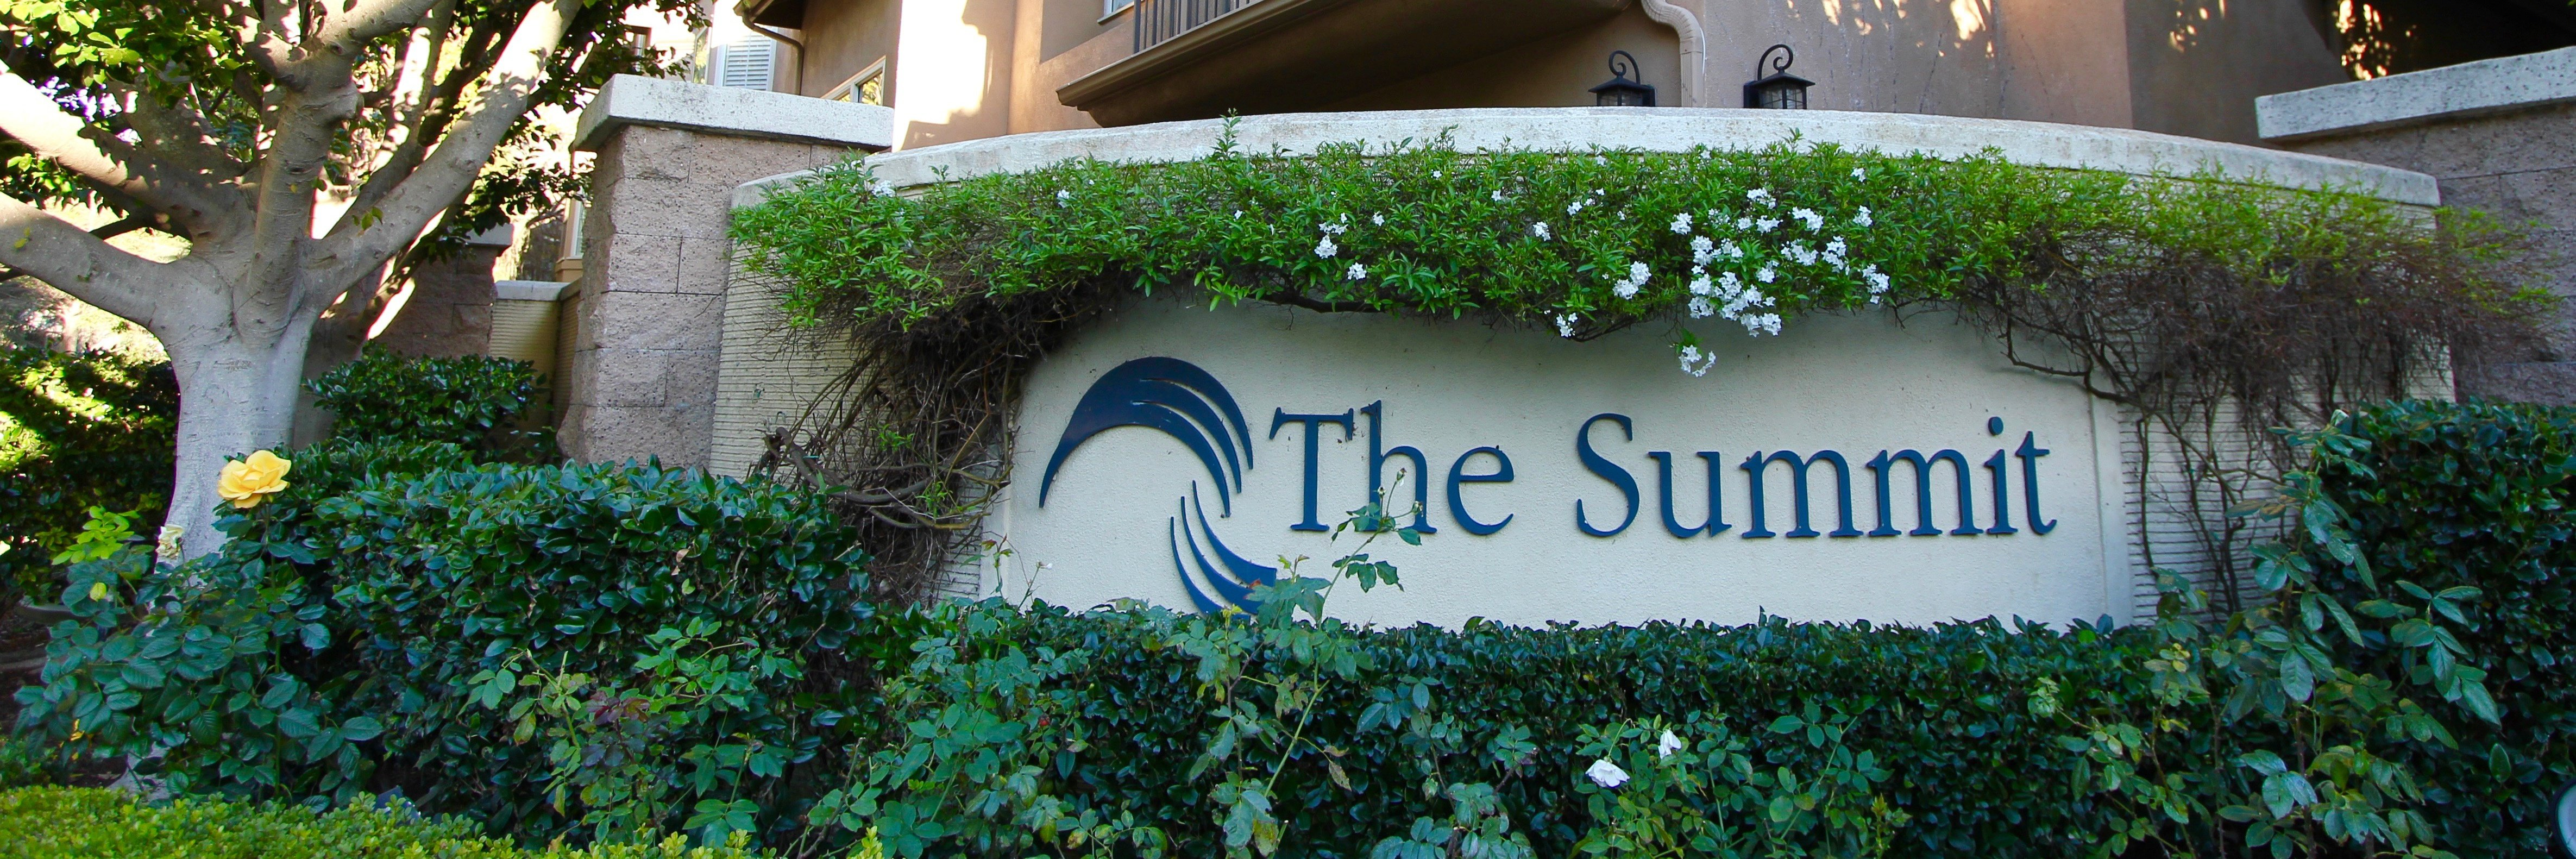 The Summit is a gated townhome community in Newport Coast CA